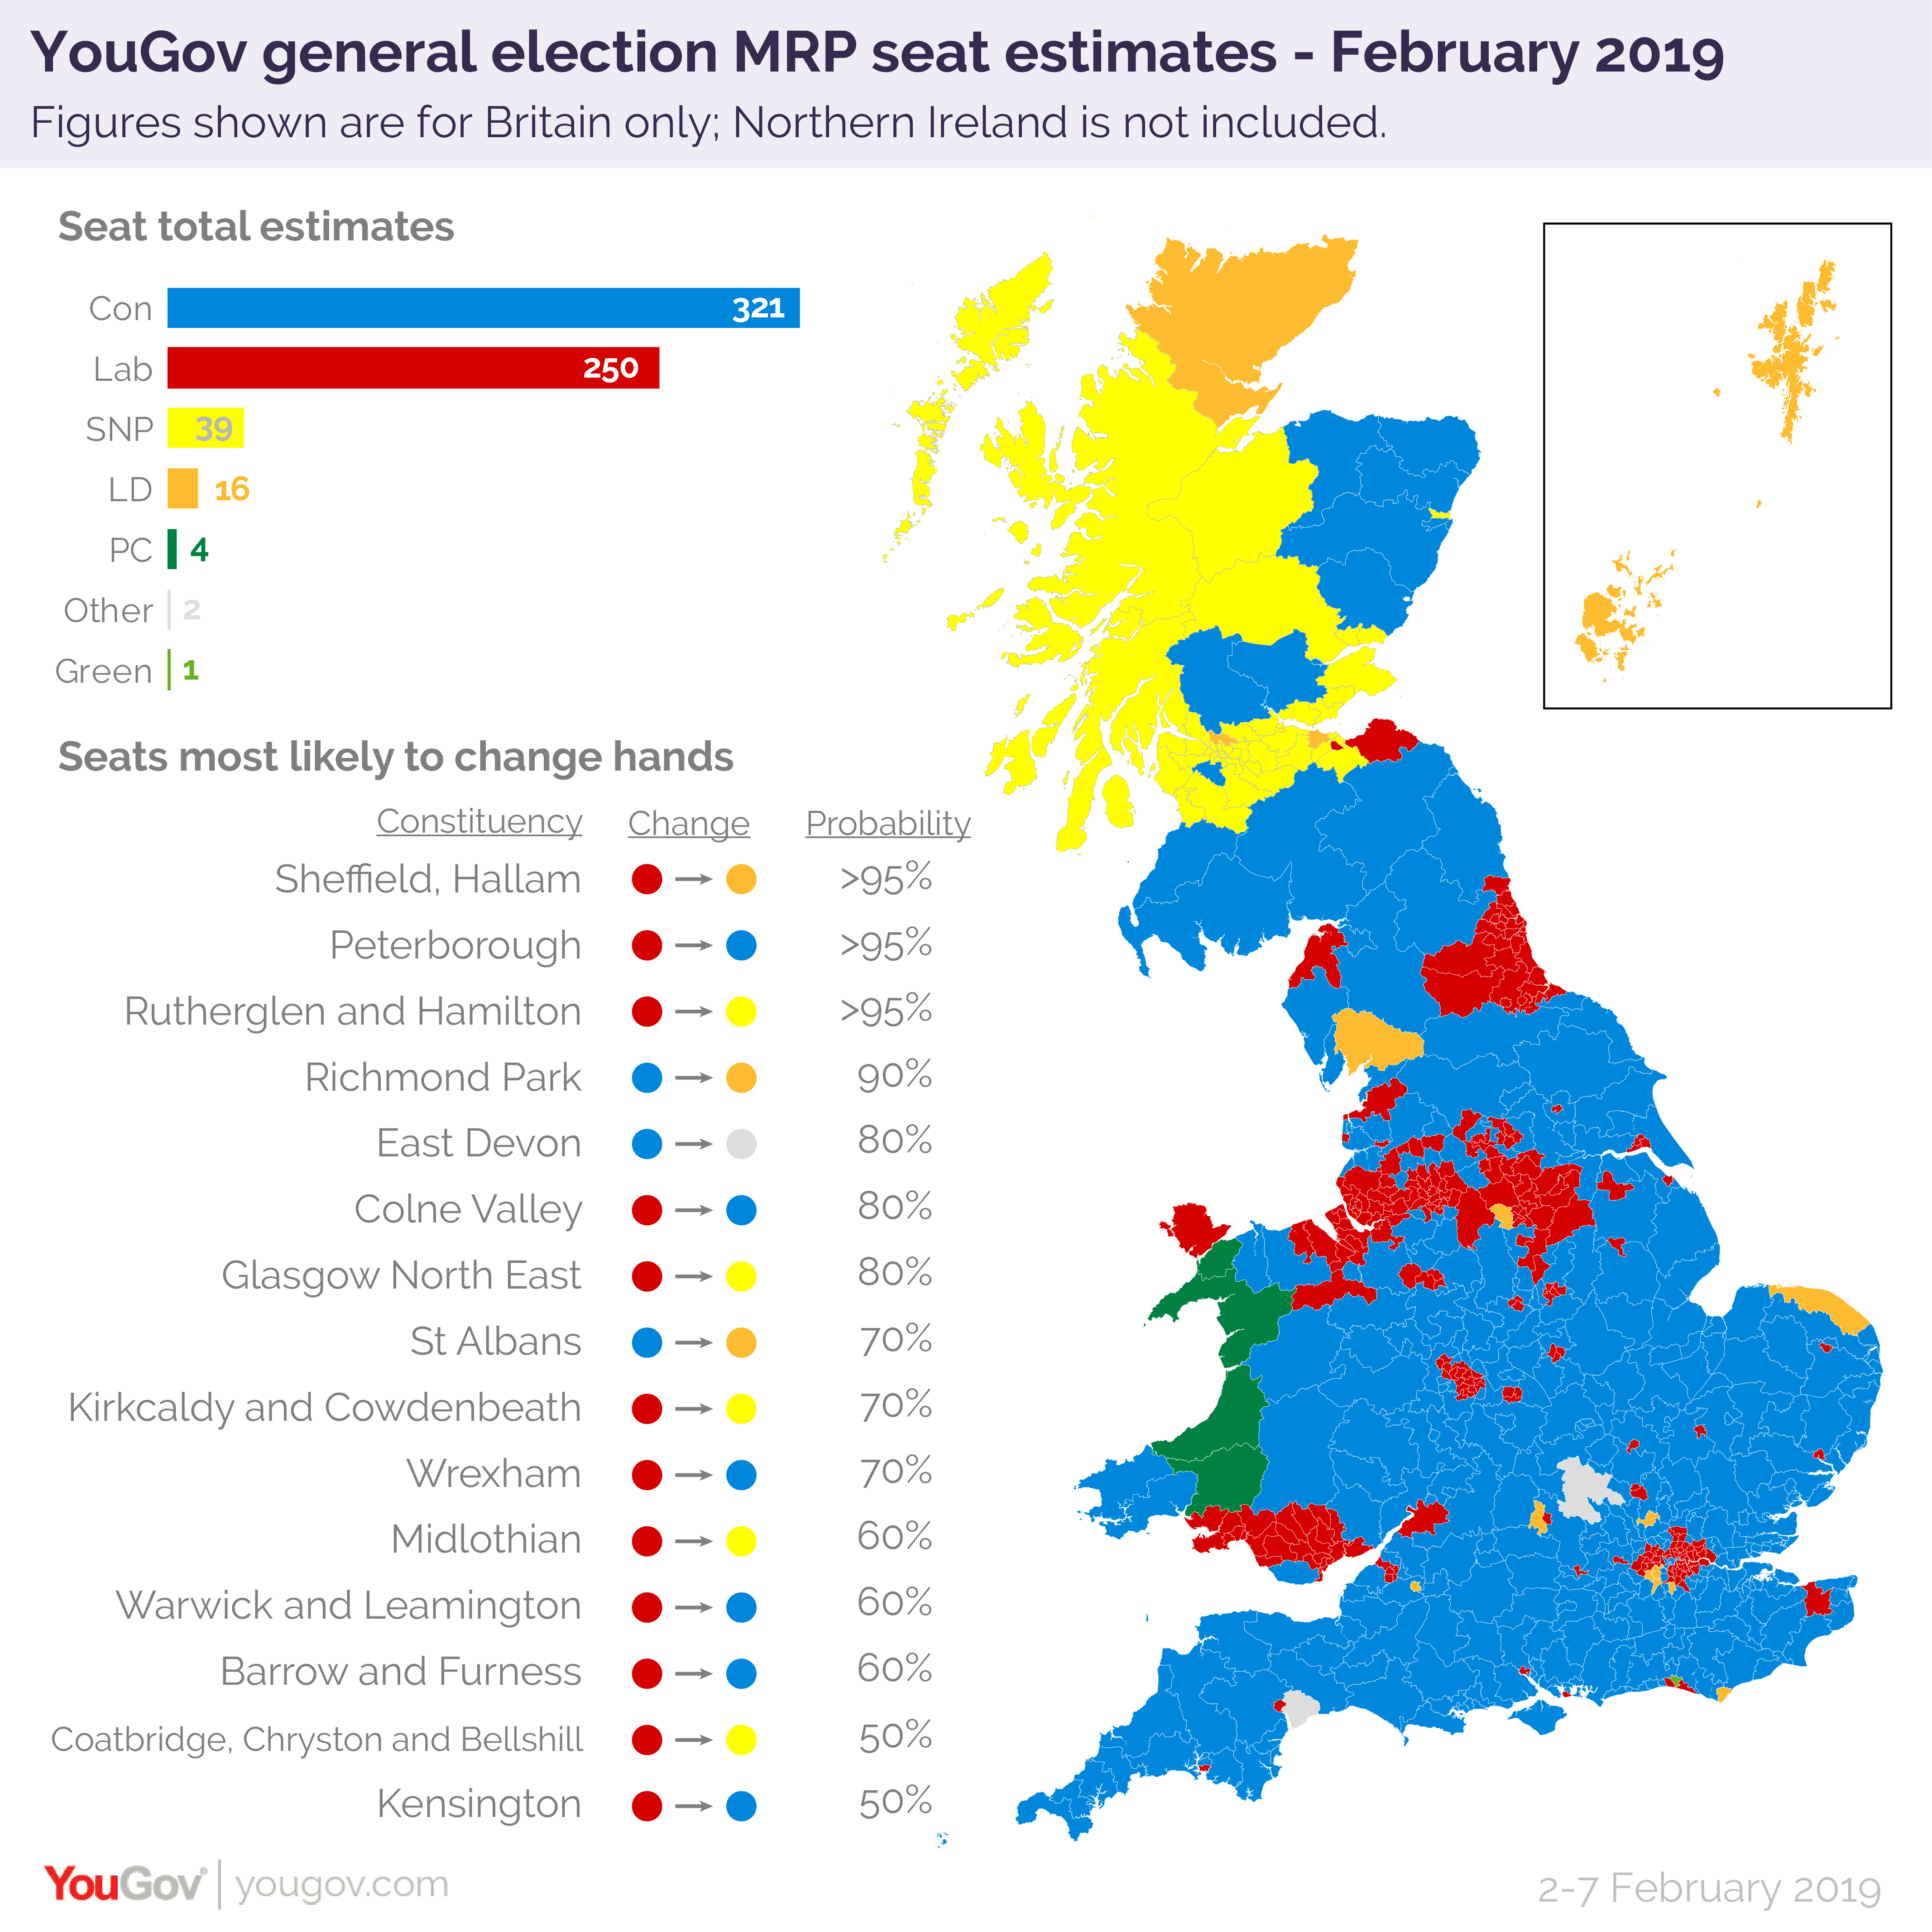 Map Of Uk Parliamentary Constituencies.Tories Unlikely To Gain Enough Seats To Solve Brexit Woes In Event